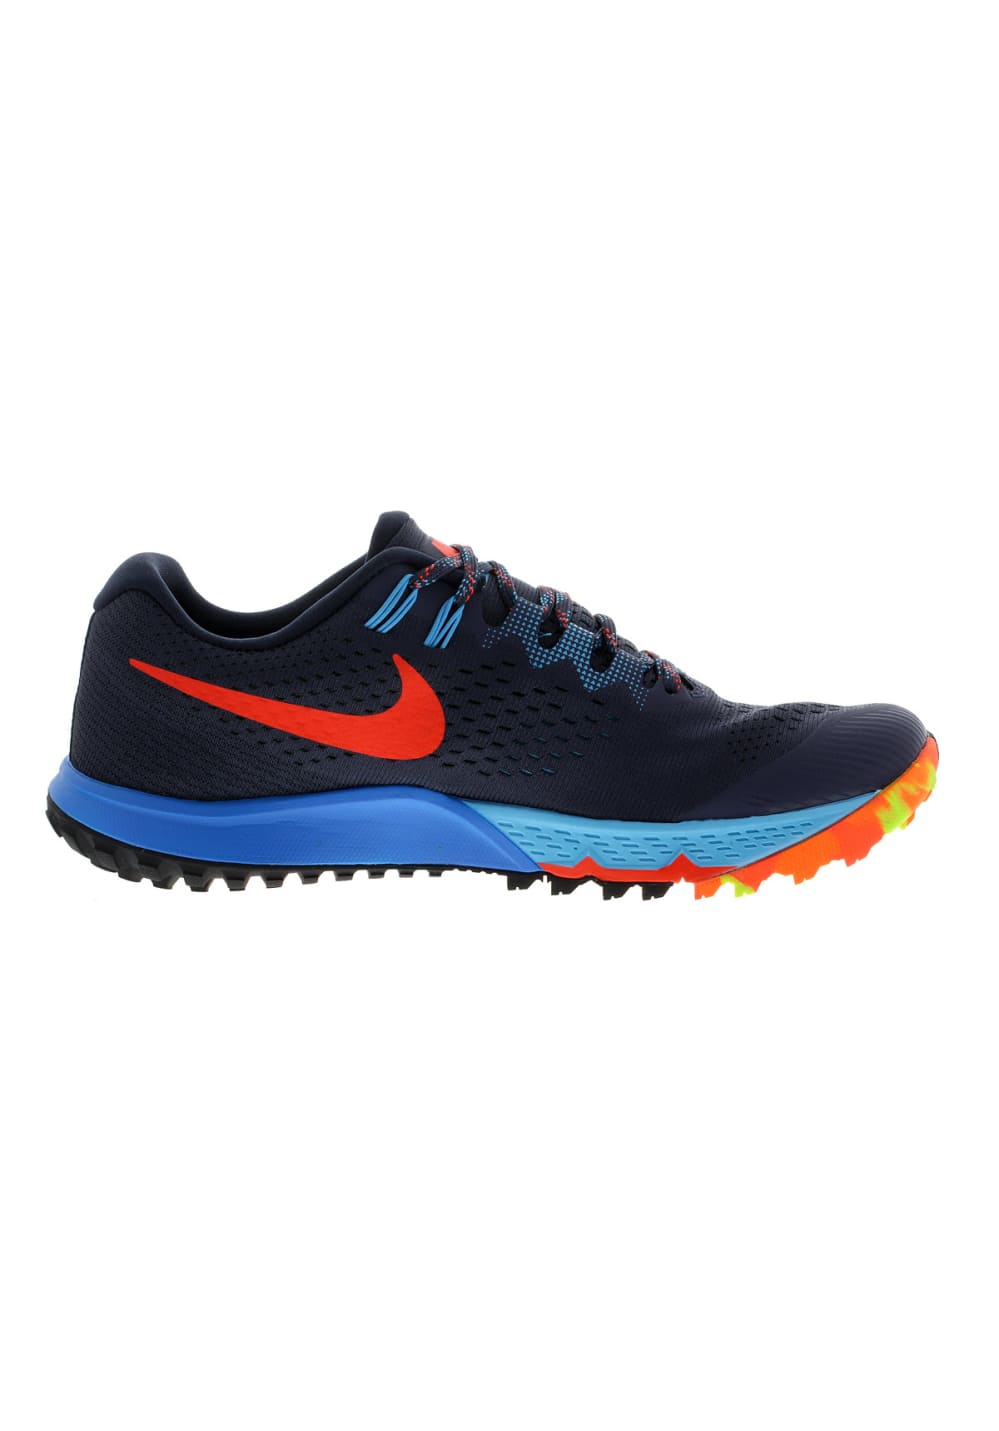 check out 93371 997b0 Next. Nike. Air Zoom Terra Kiger 4 - Chaussures running pour Homme